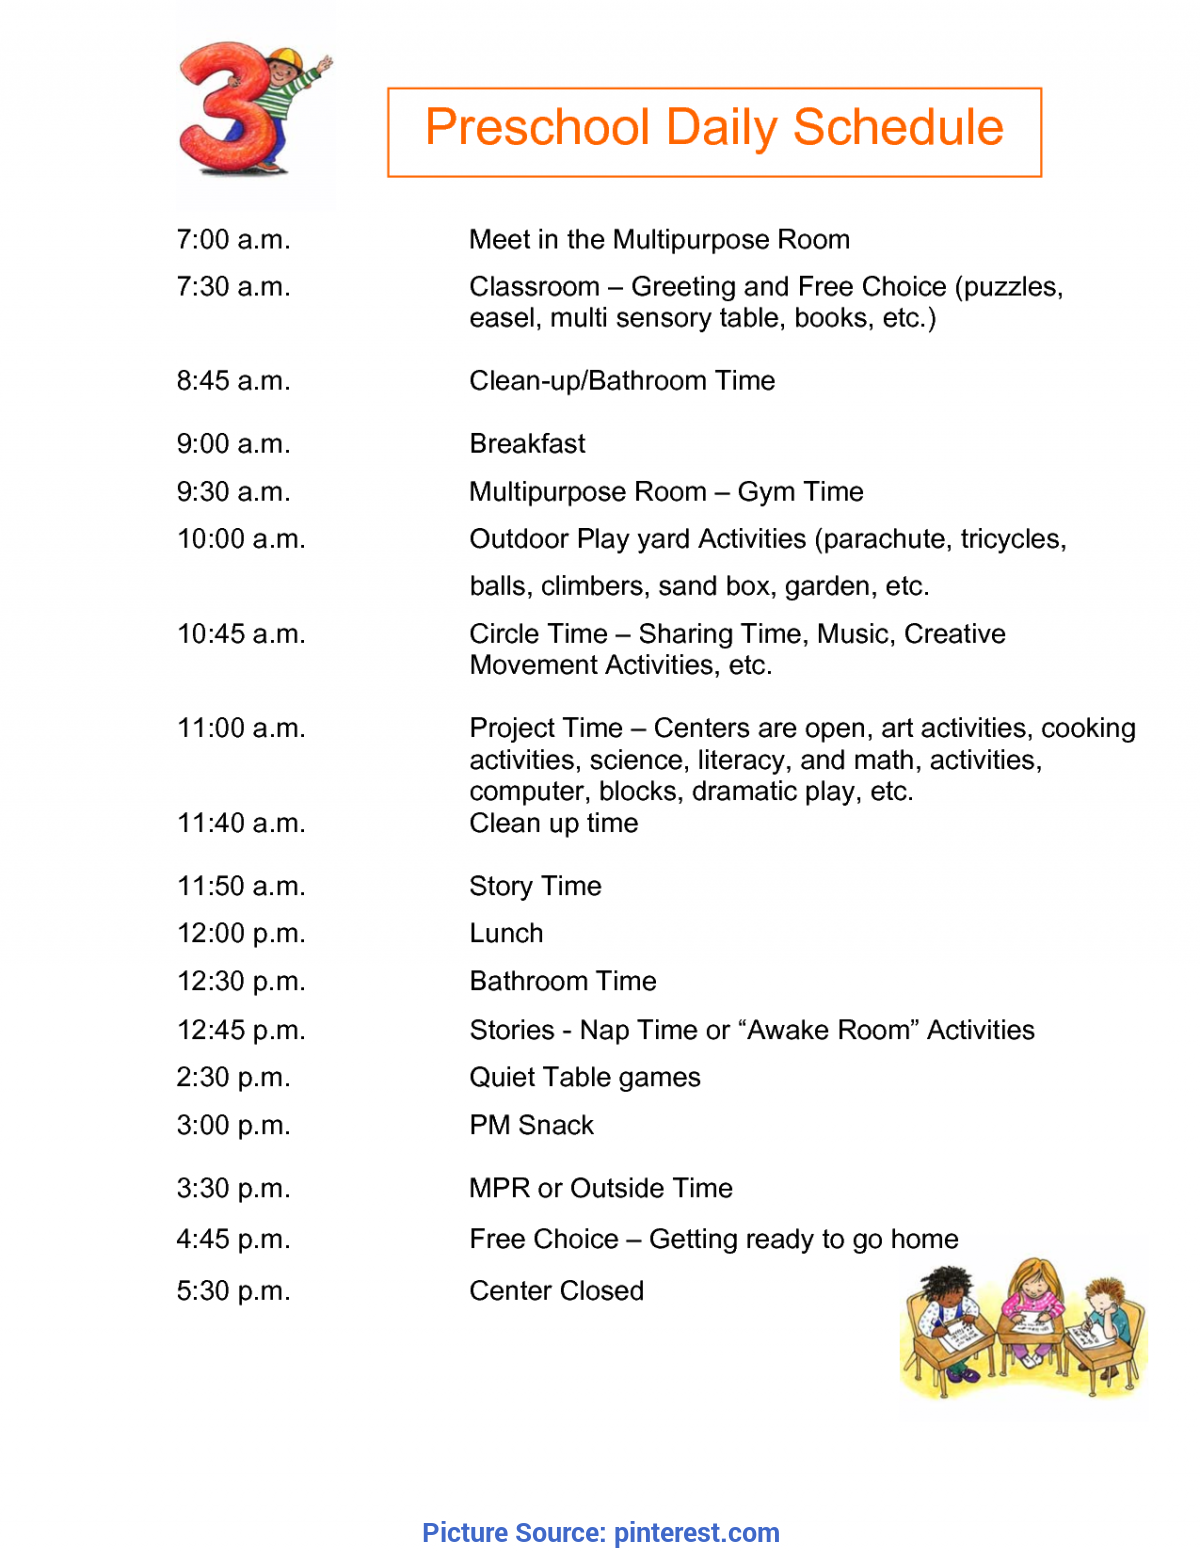 Unusual Preschool Daily Schedule Half Day Preschool Daily Schedule Submited Images | Pic2Fl